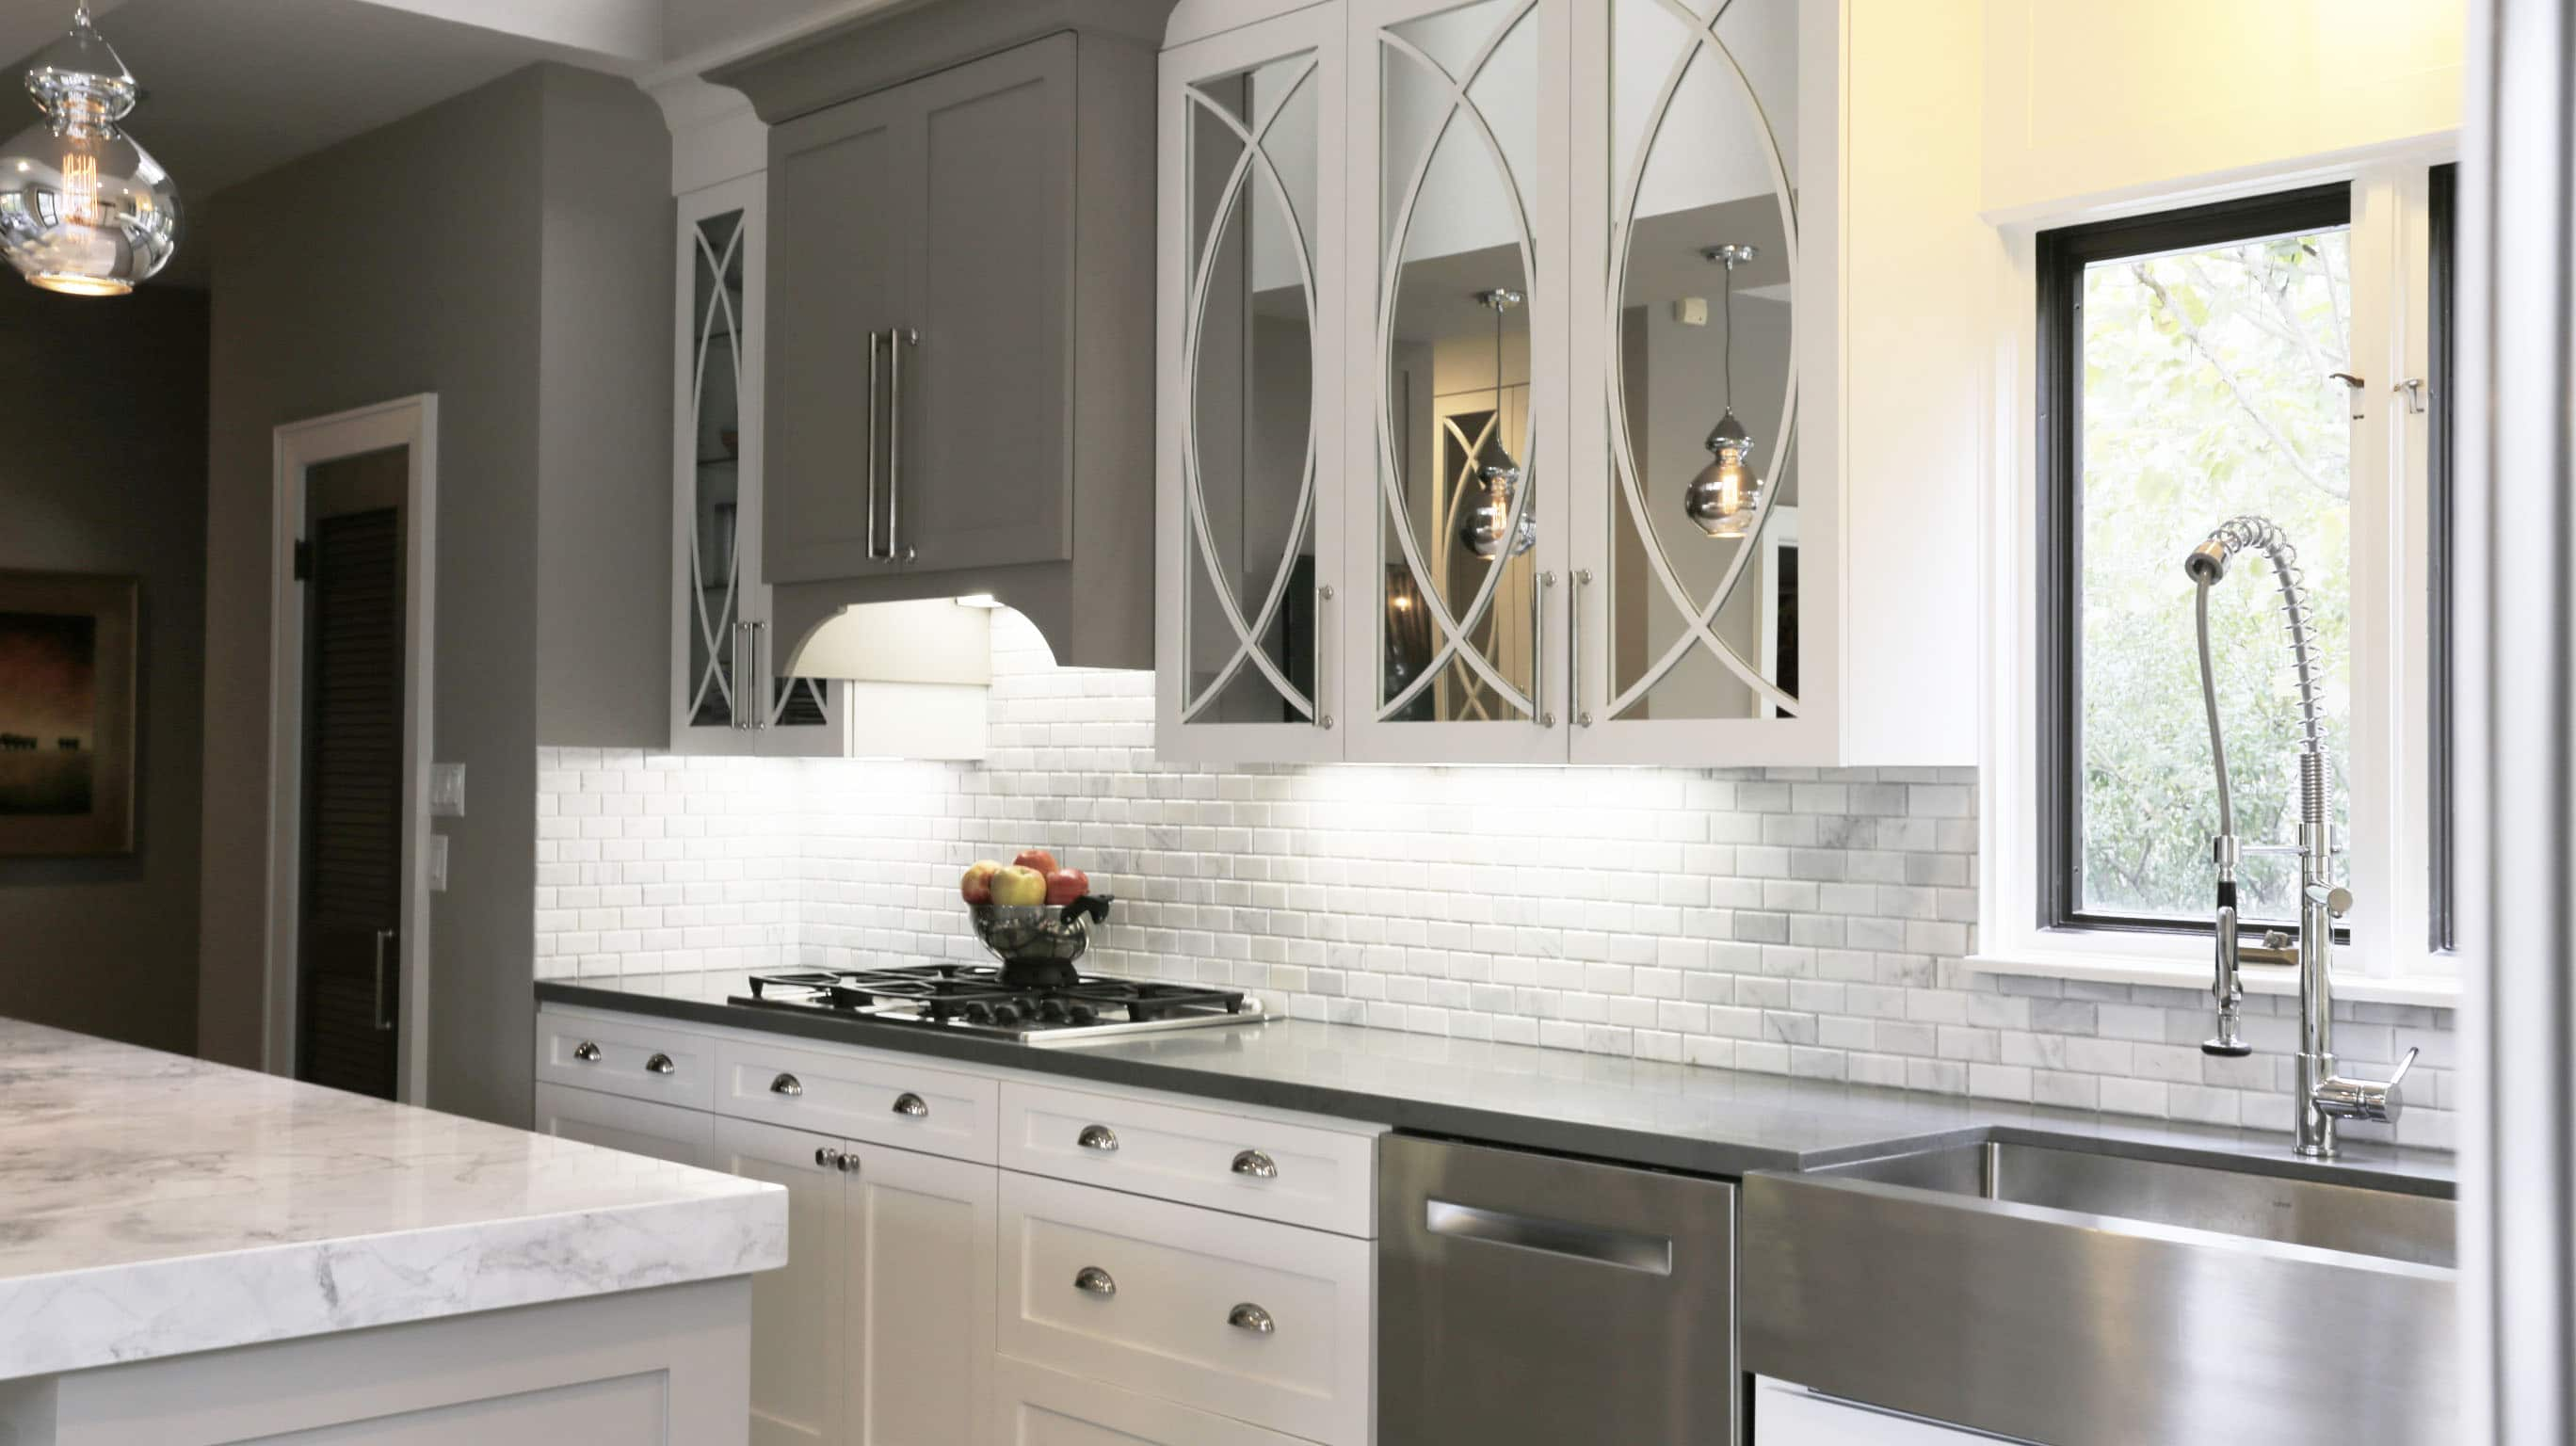 White Kitchen | 1920's's Bolsover Home Remodel | Houston, TX | 2015